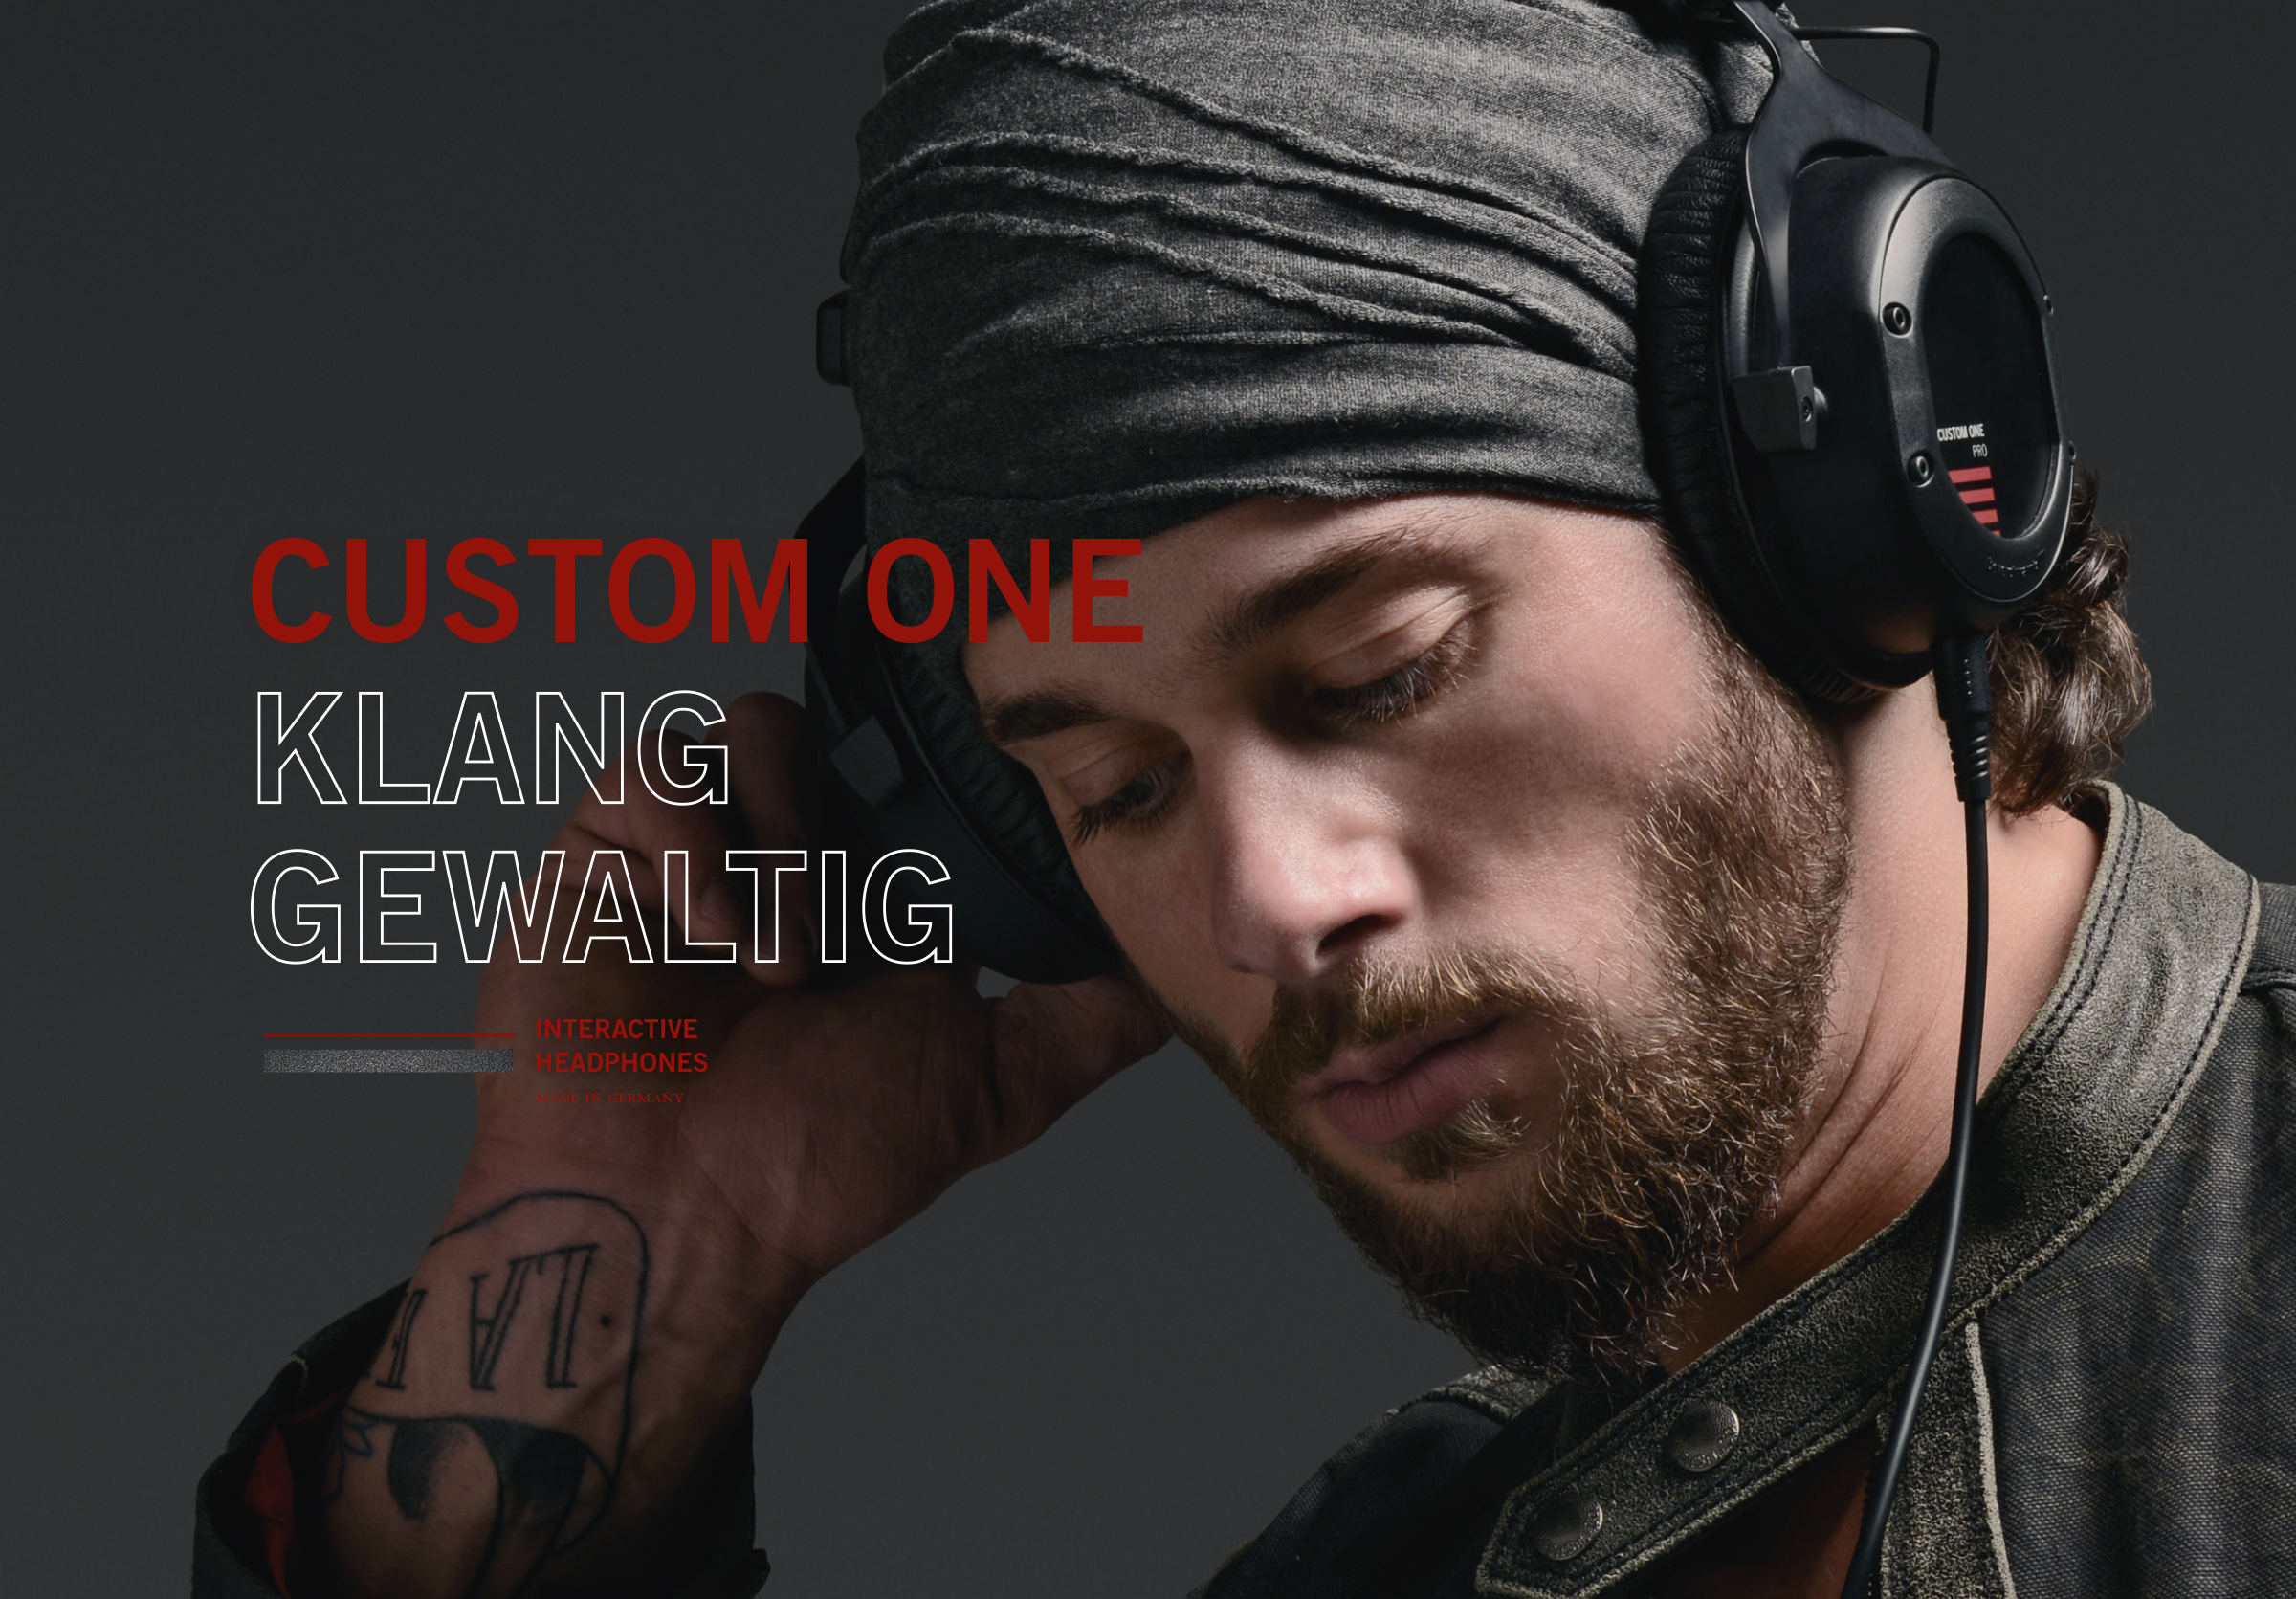 beyerdynamic_deutsch7.jpg